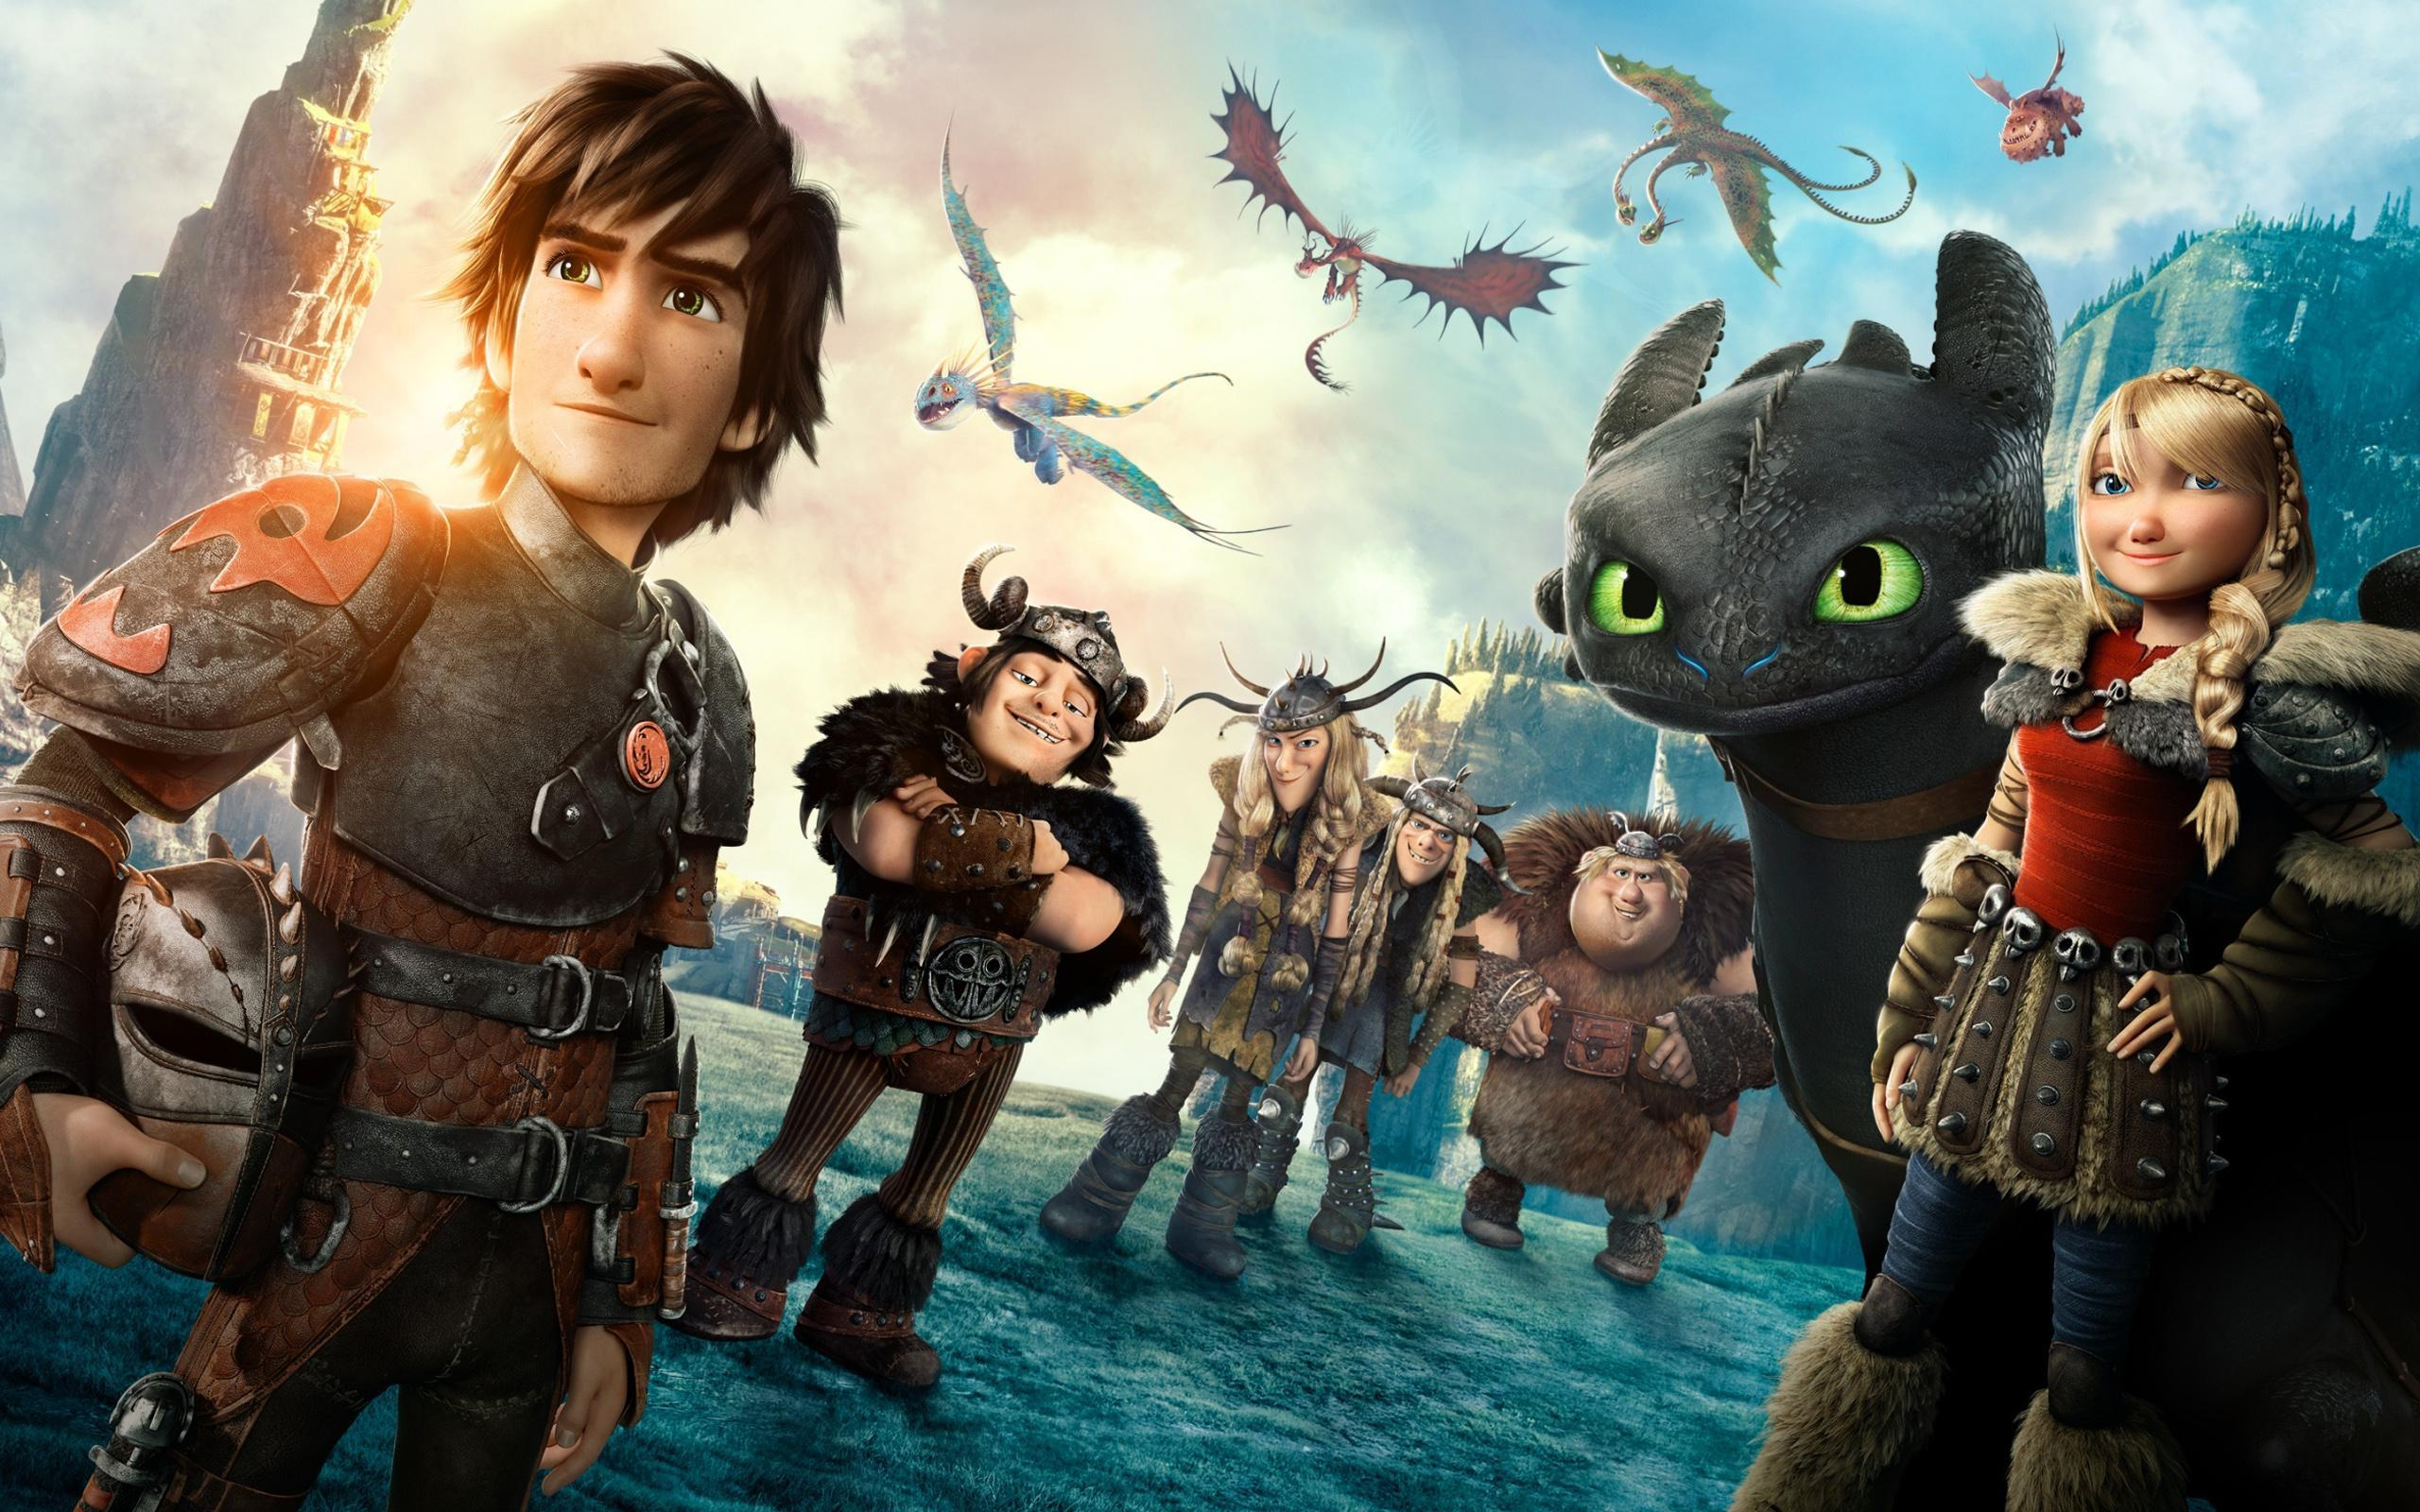 How To Train Your Dragon Wallpaper Hd For Android Apk Download